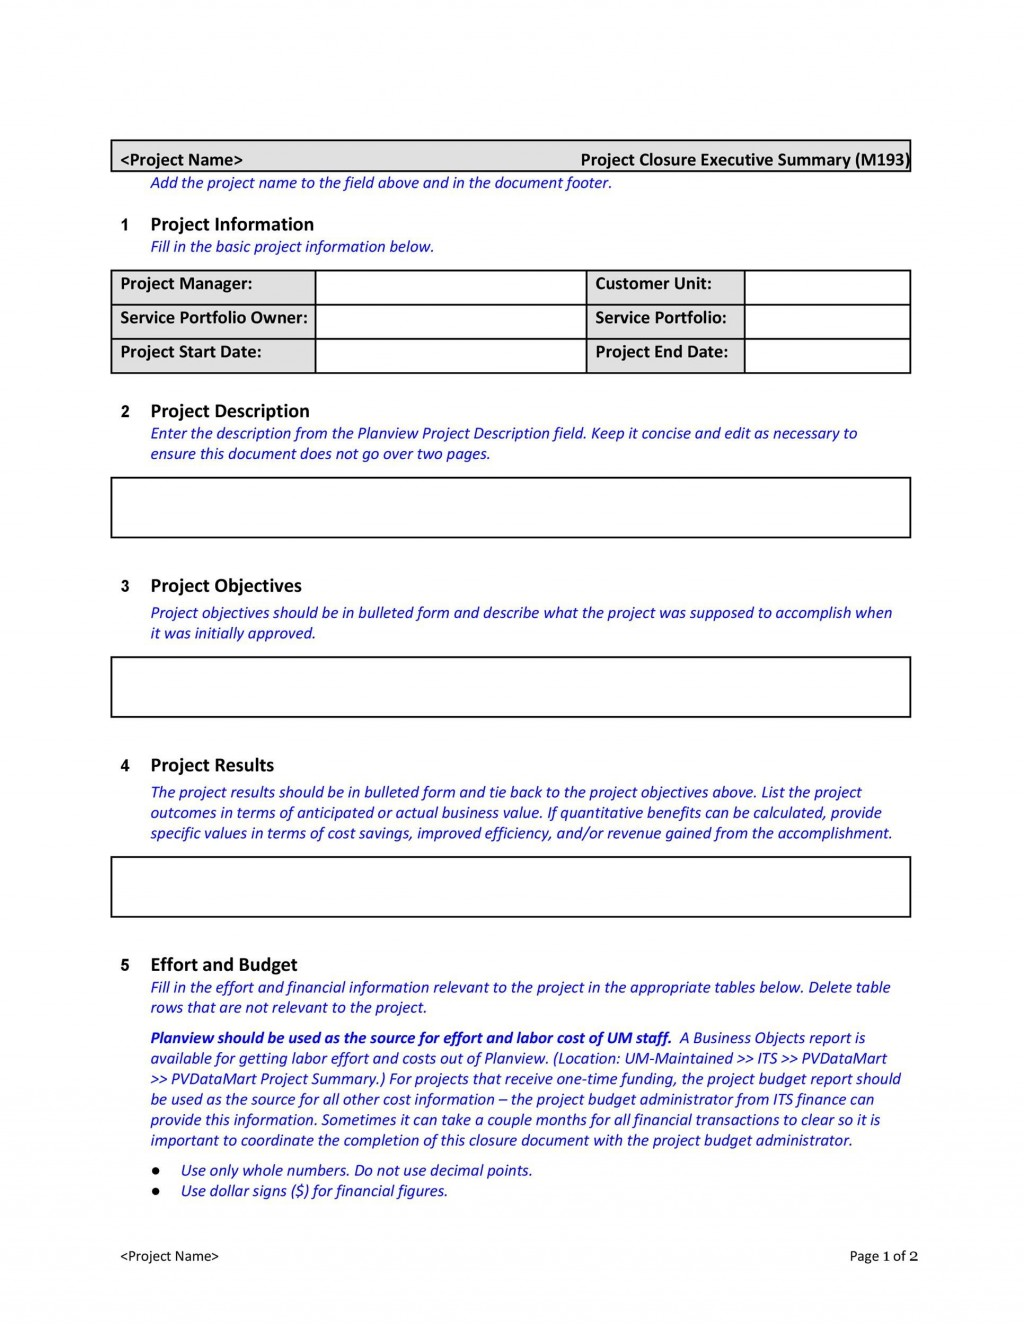 006 Awesome Executive Summary Word Template Free Download High Resolution Large